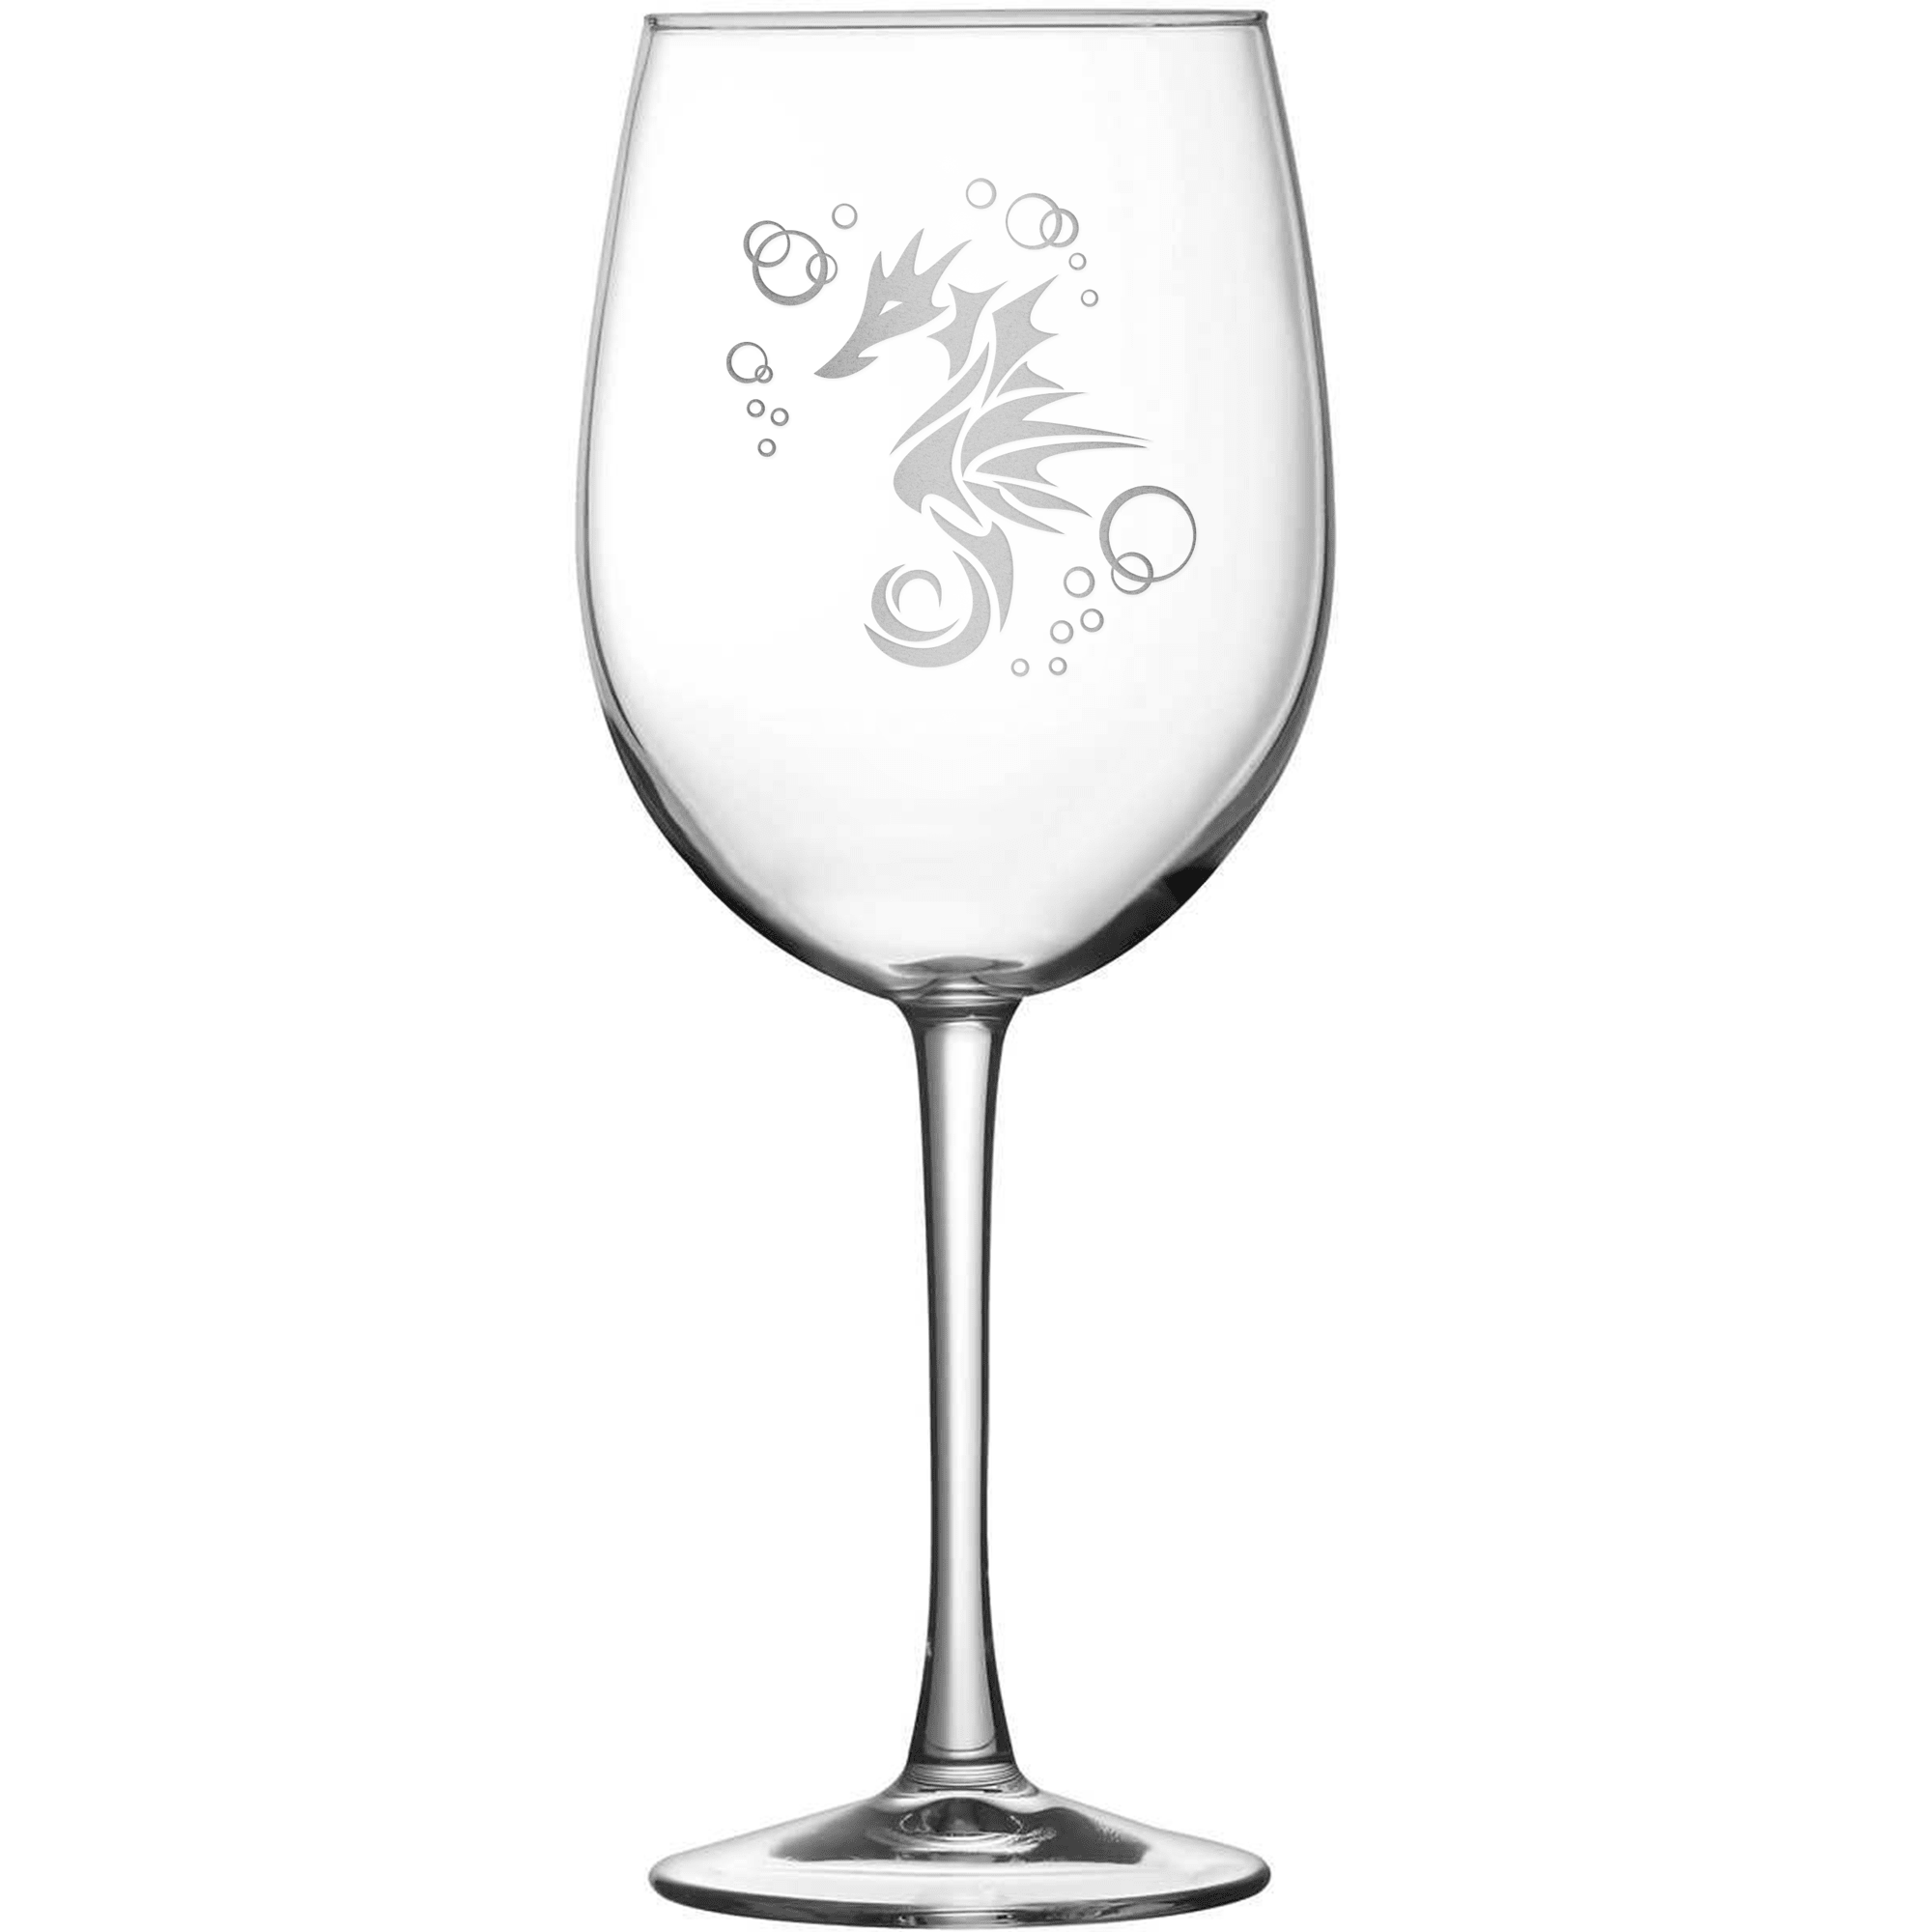 Tulip Wine Glass with Seahorse Design, Hand Etched by Integrity Bottles